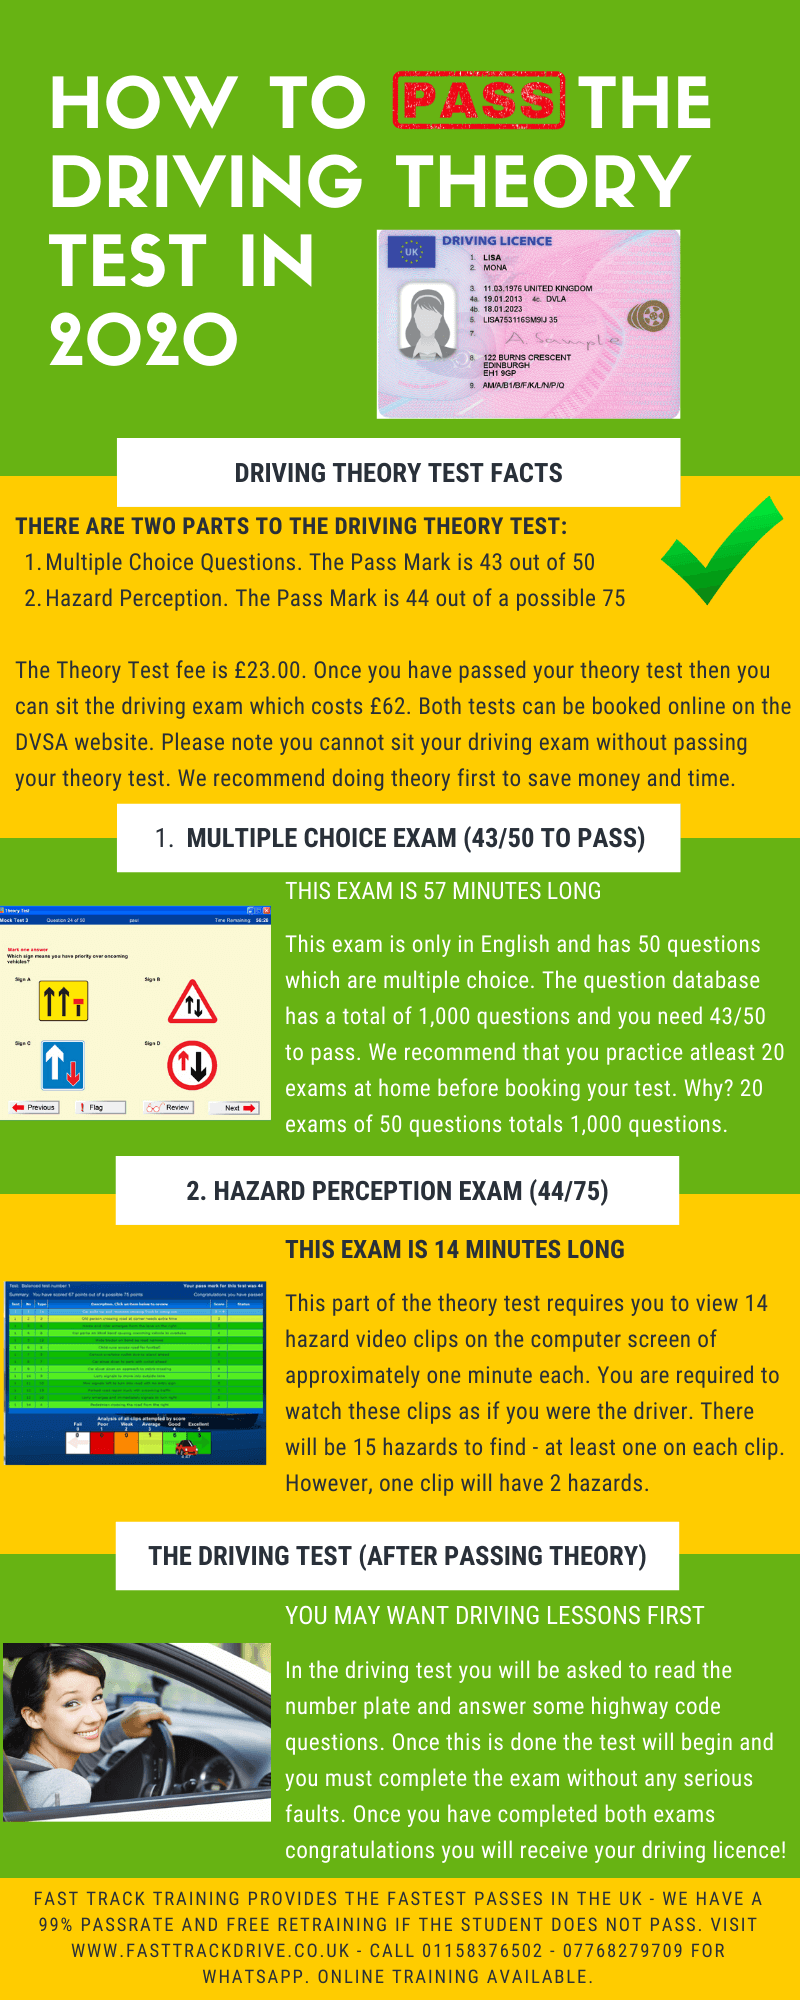 How to pass the driving theory test in 2020 an infographic